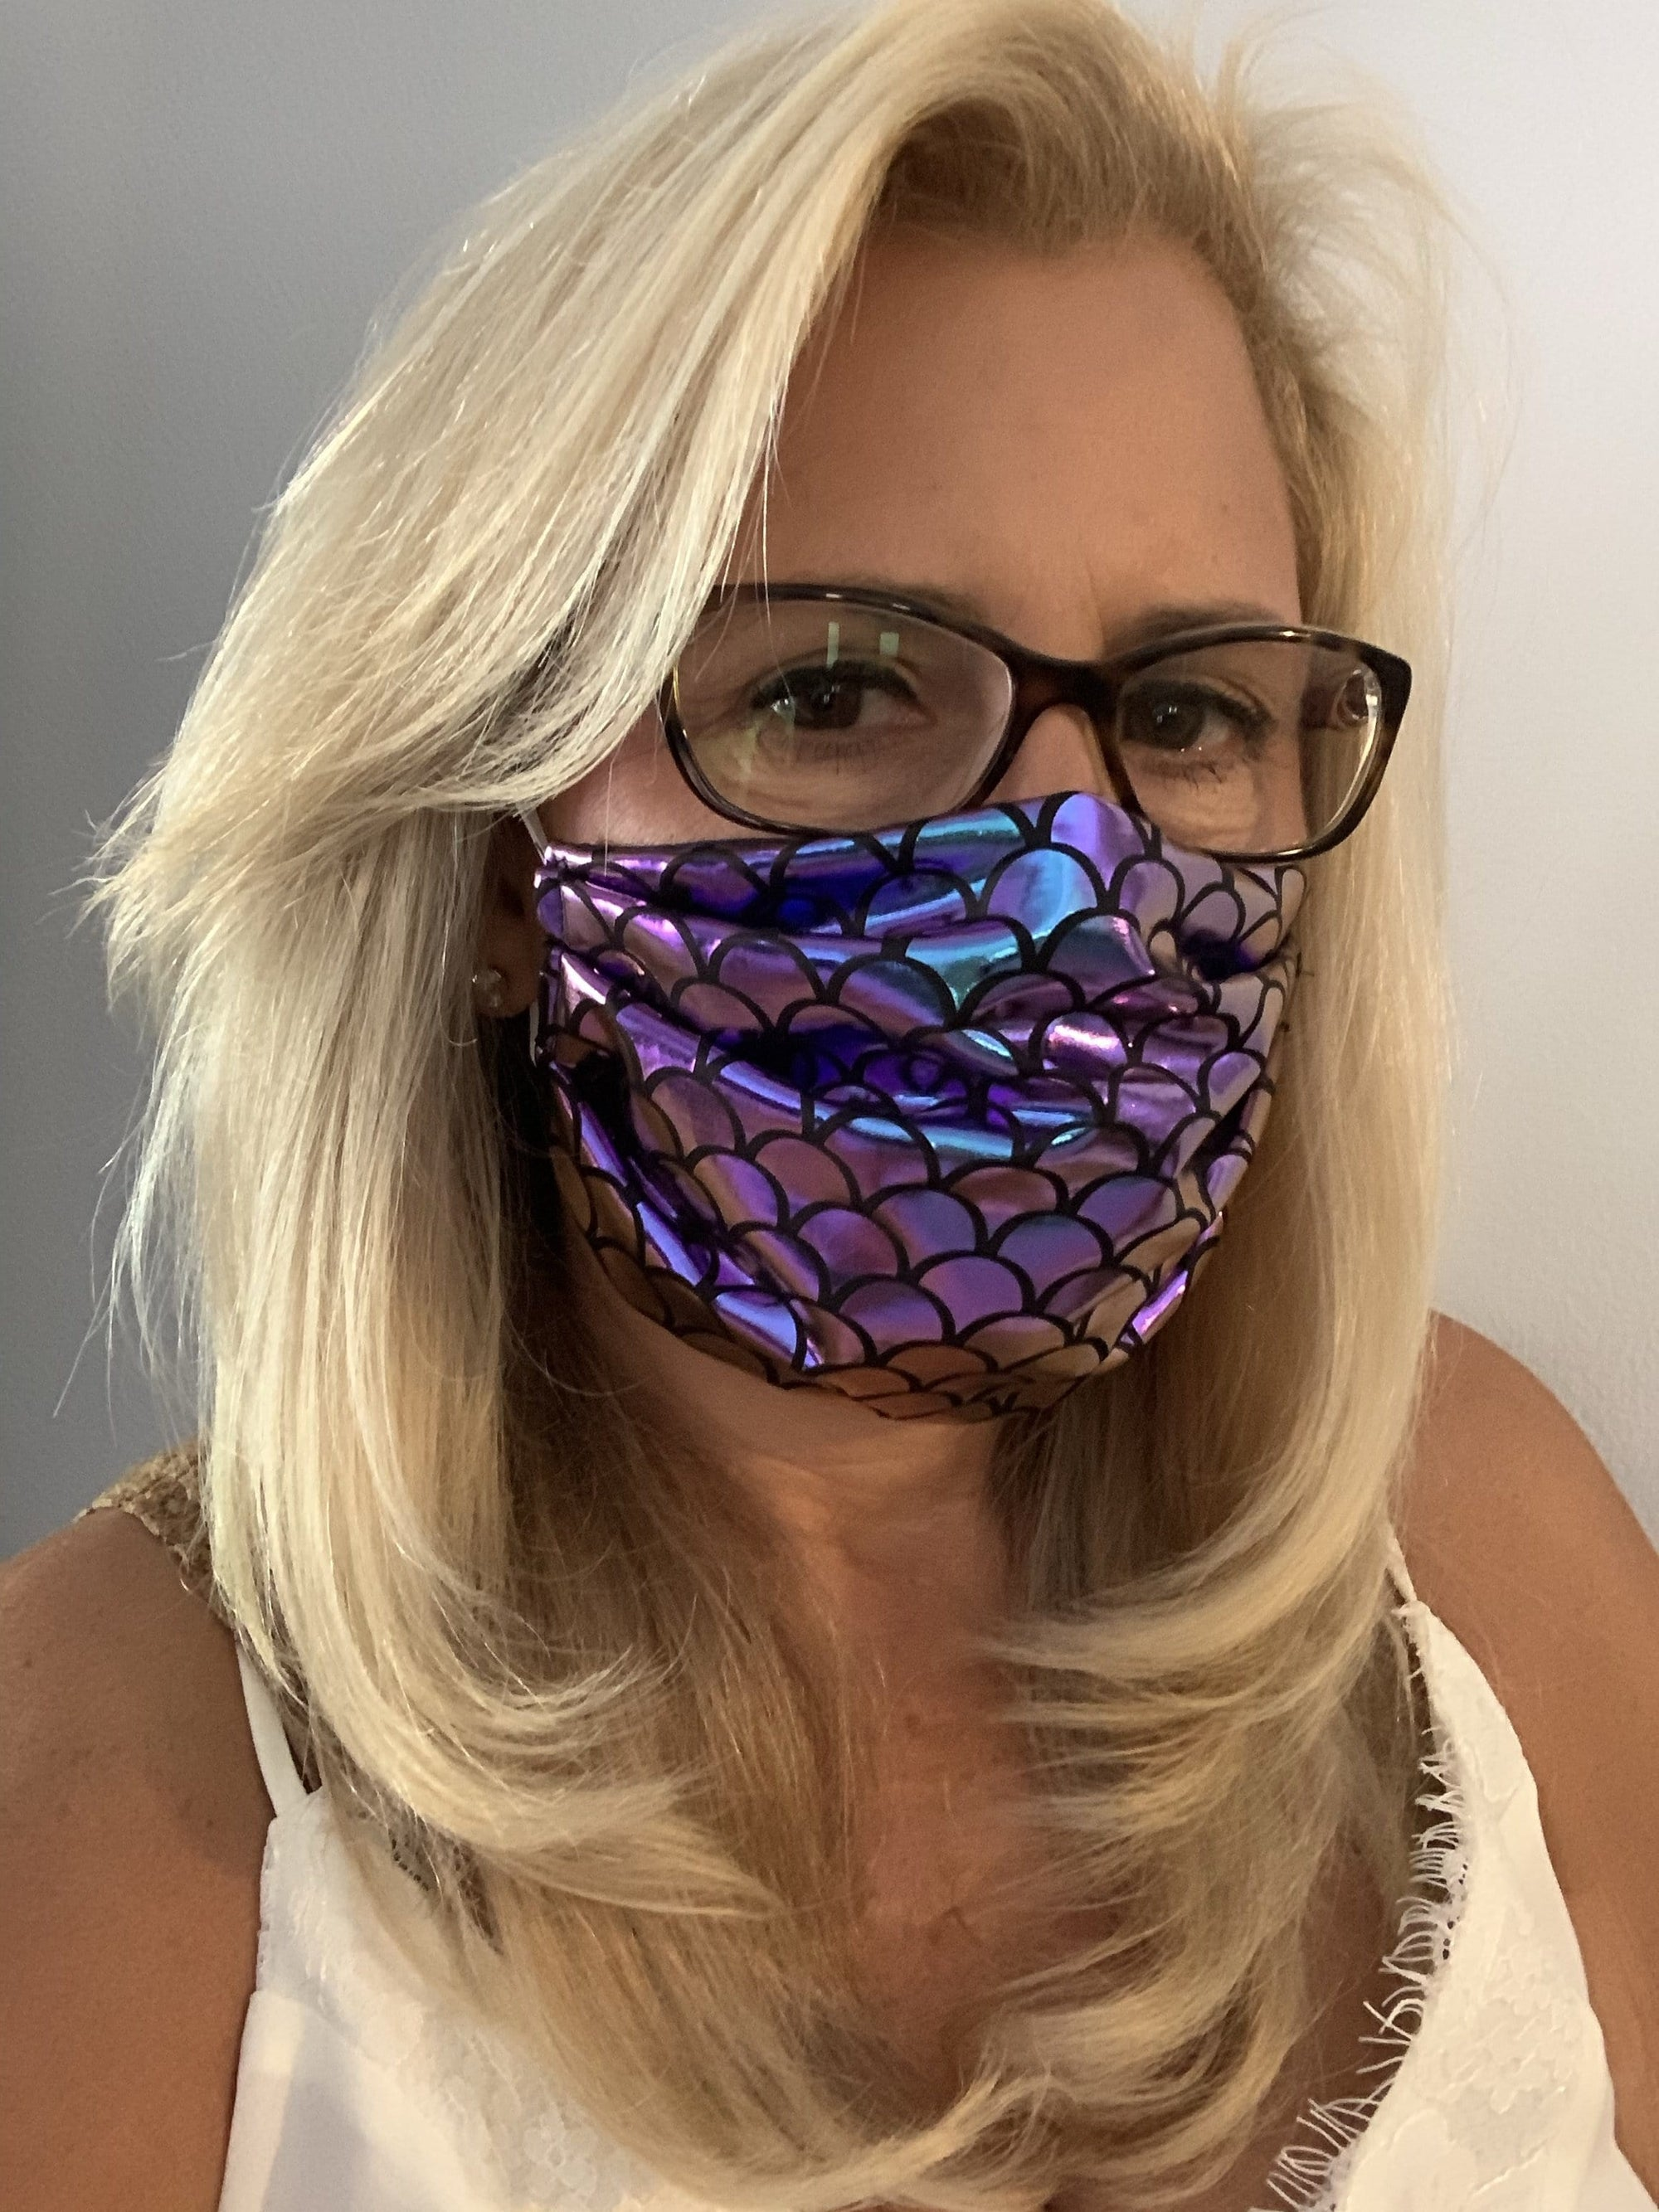 Stacy Bradley Design Face Mask Under the Sea equestrian team apparel online tack store mobile tack store custom farm apparel custom show stable clothing equestrian lifestyle horse show clothing riding clothes horses equestrian tack store